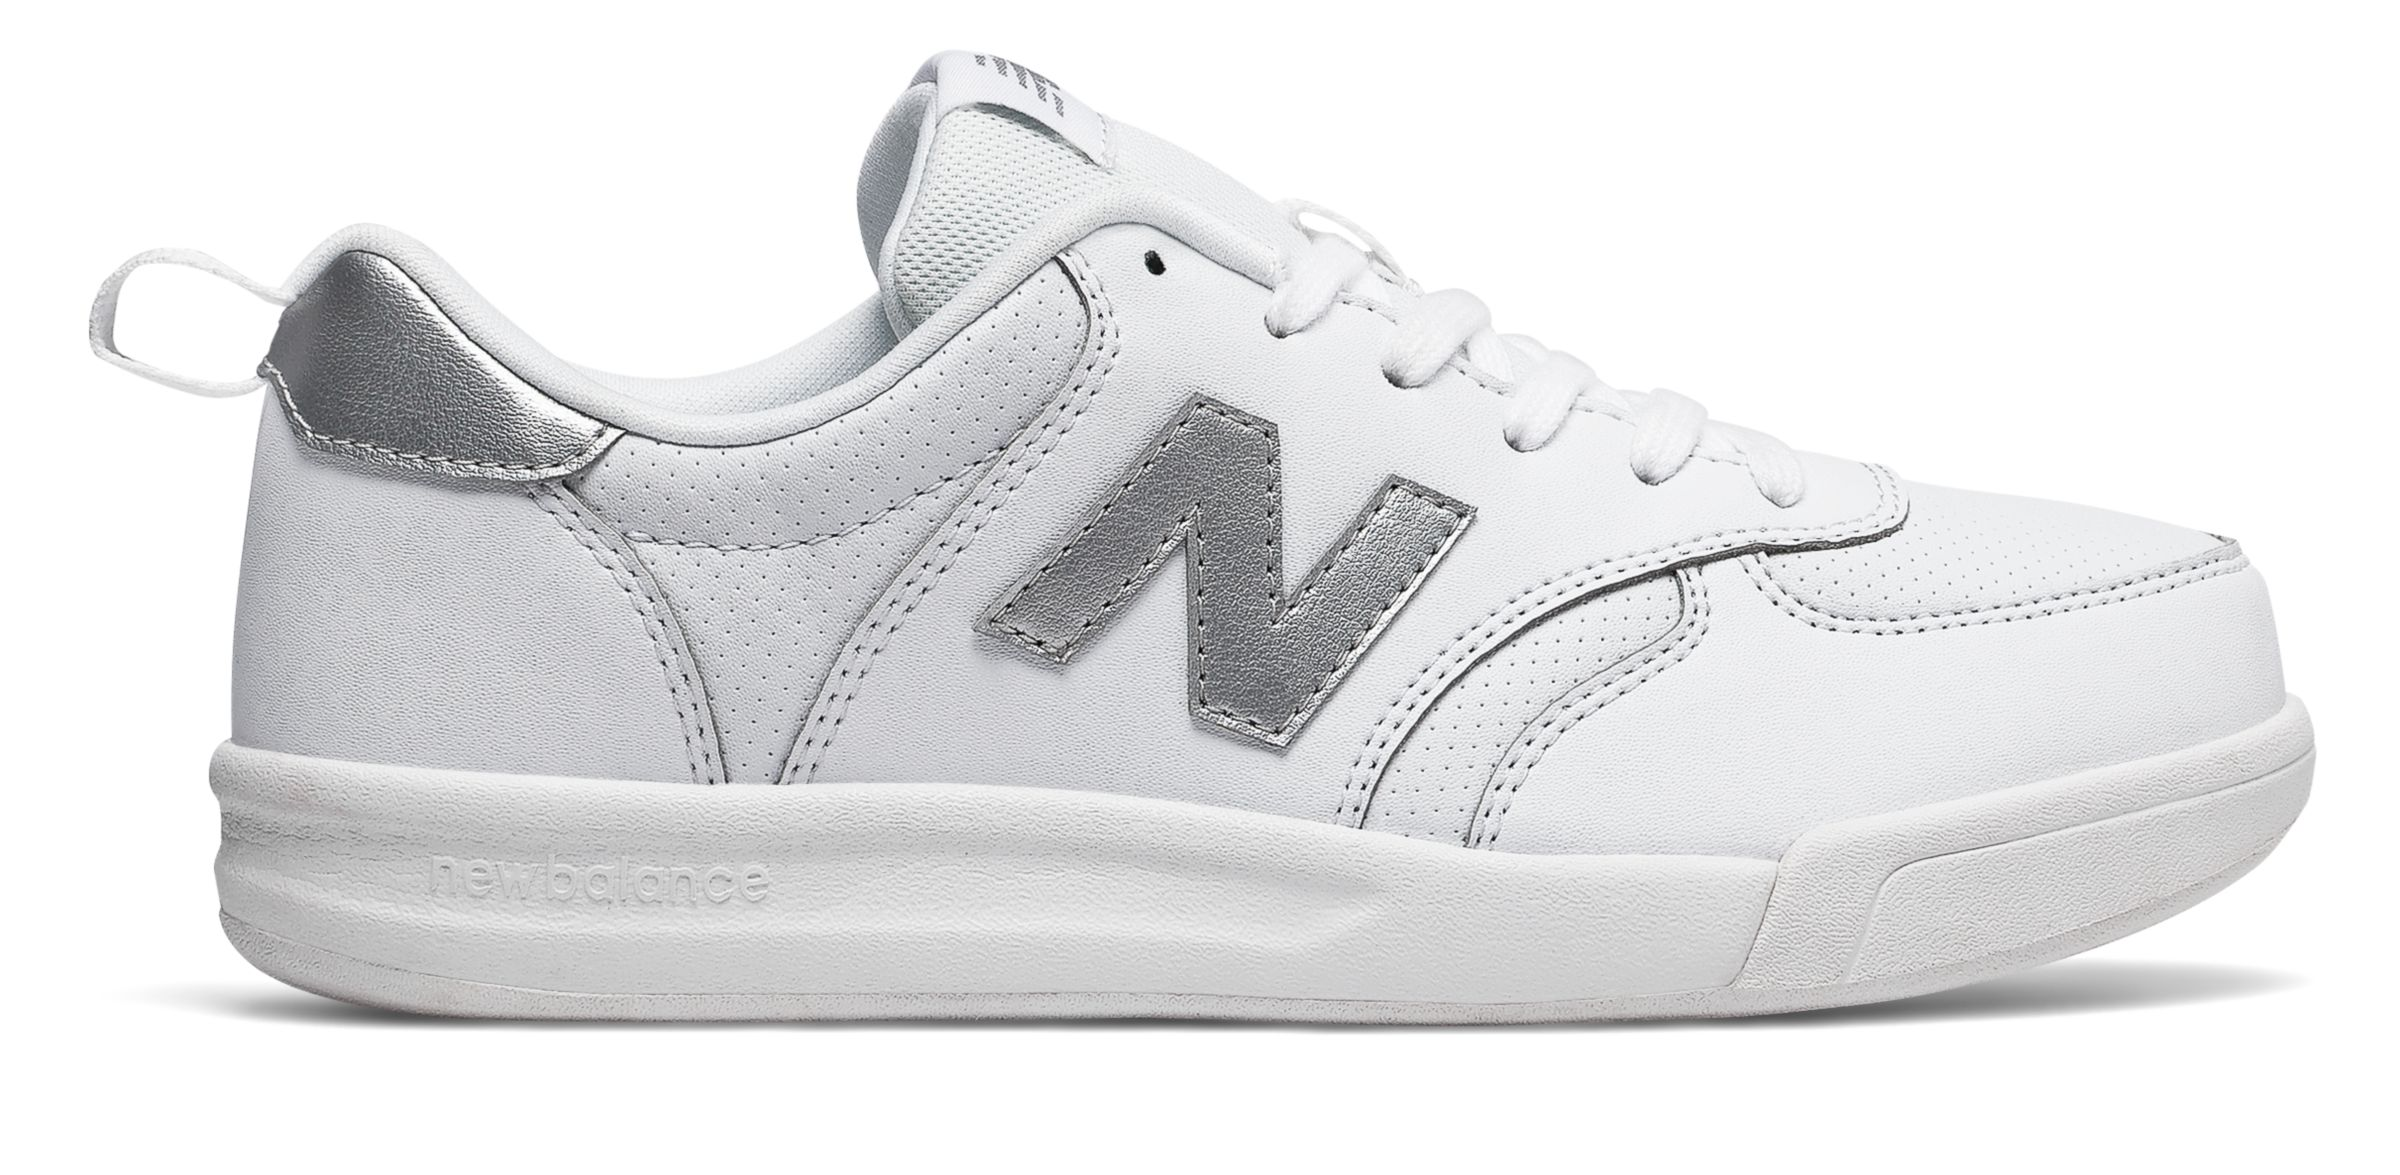 NB 300 New Balance, White with Silver